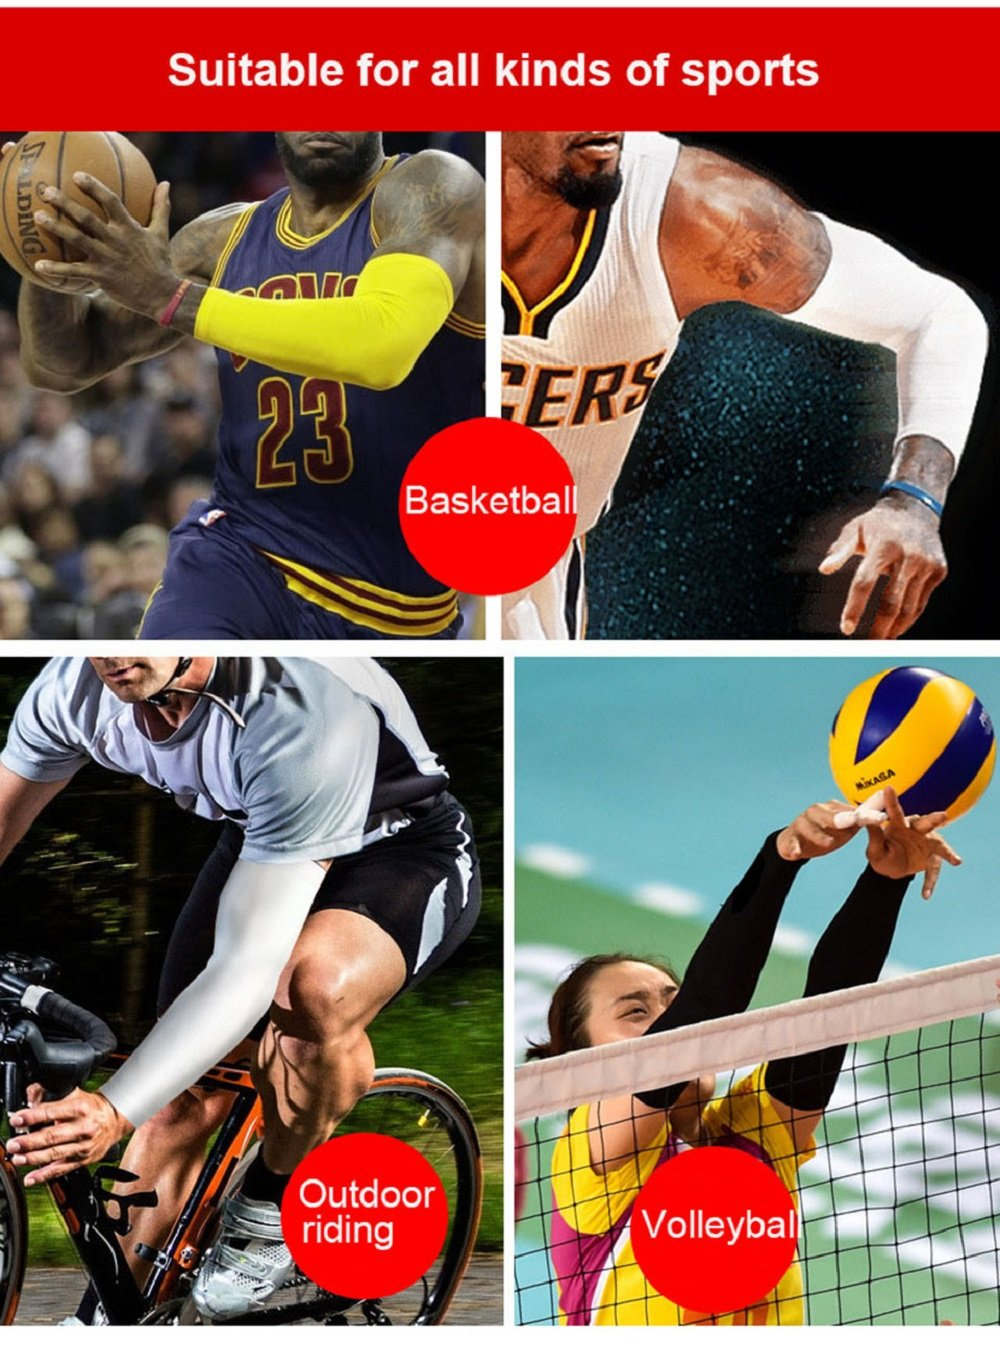 Running Arm Sleeves Basketball Elbow Pad Fitness Armguards Breathable Quick Dry Uv Protection Sports Cycling Arm Warmers Men's Accessories Apparel Accessories